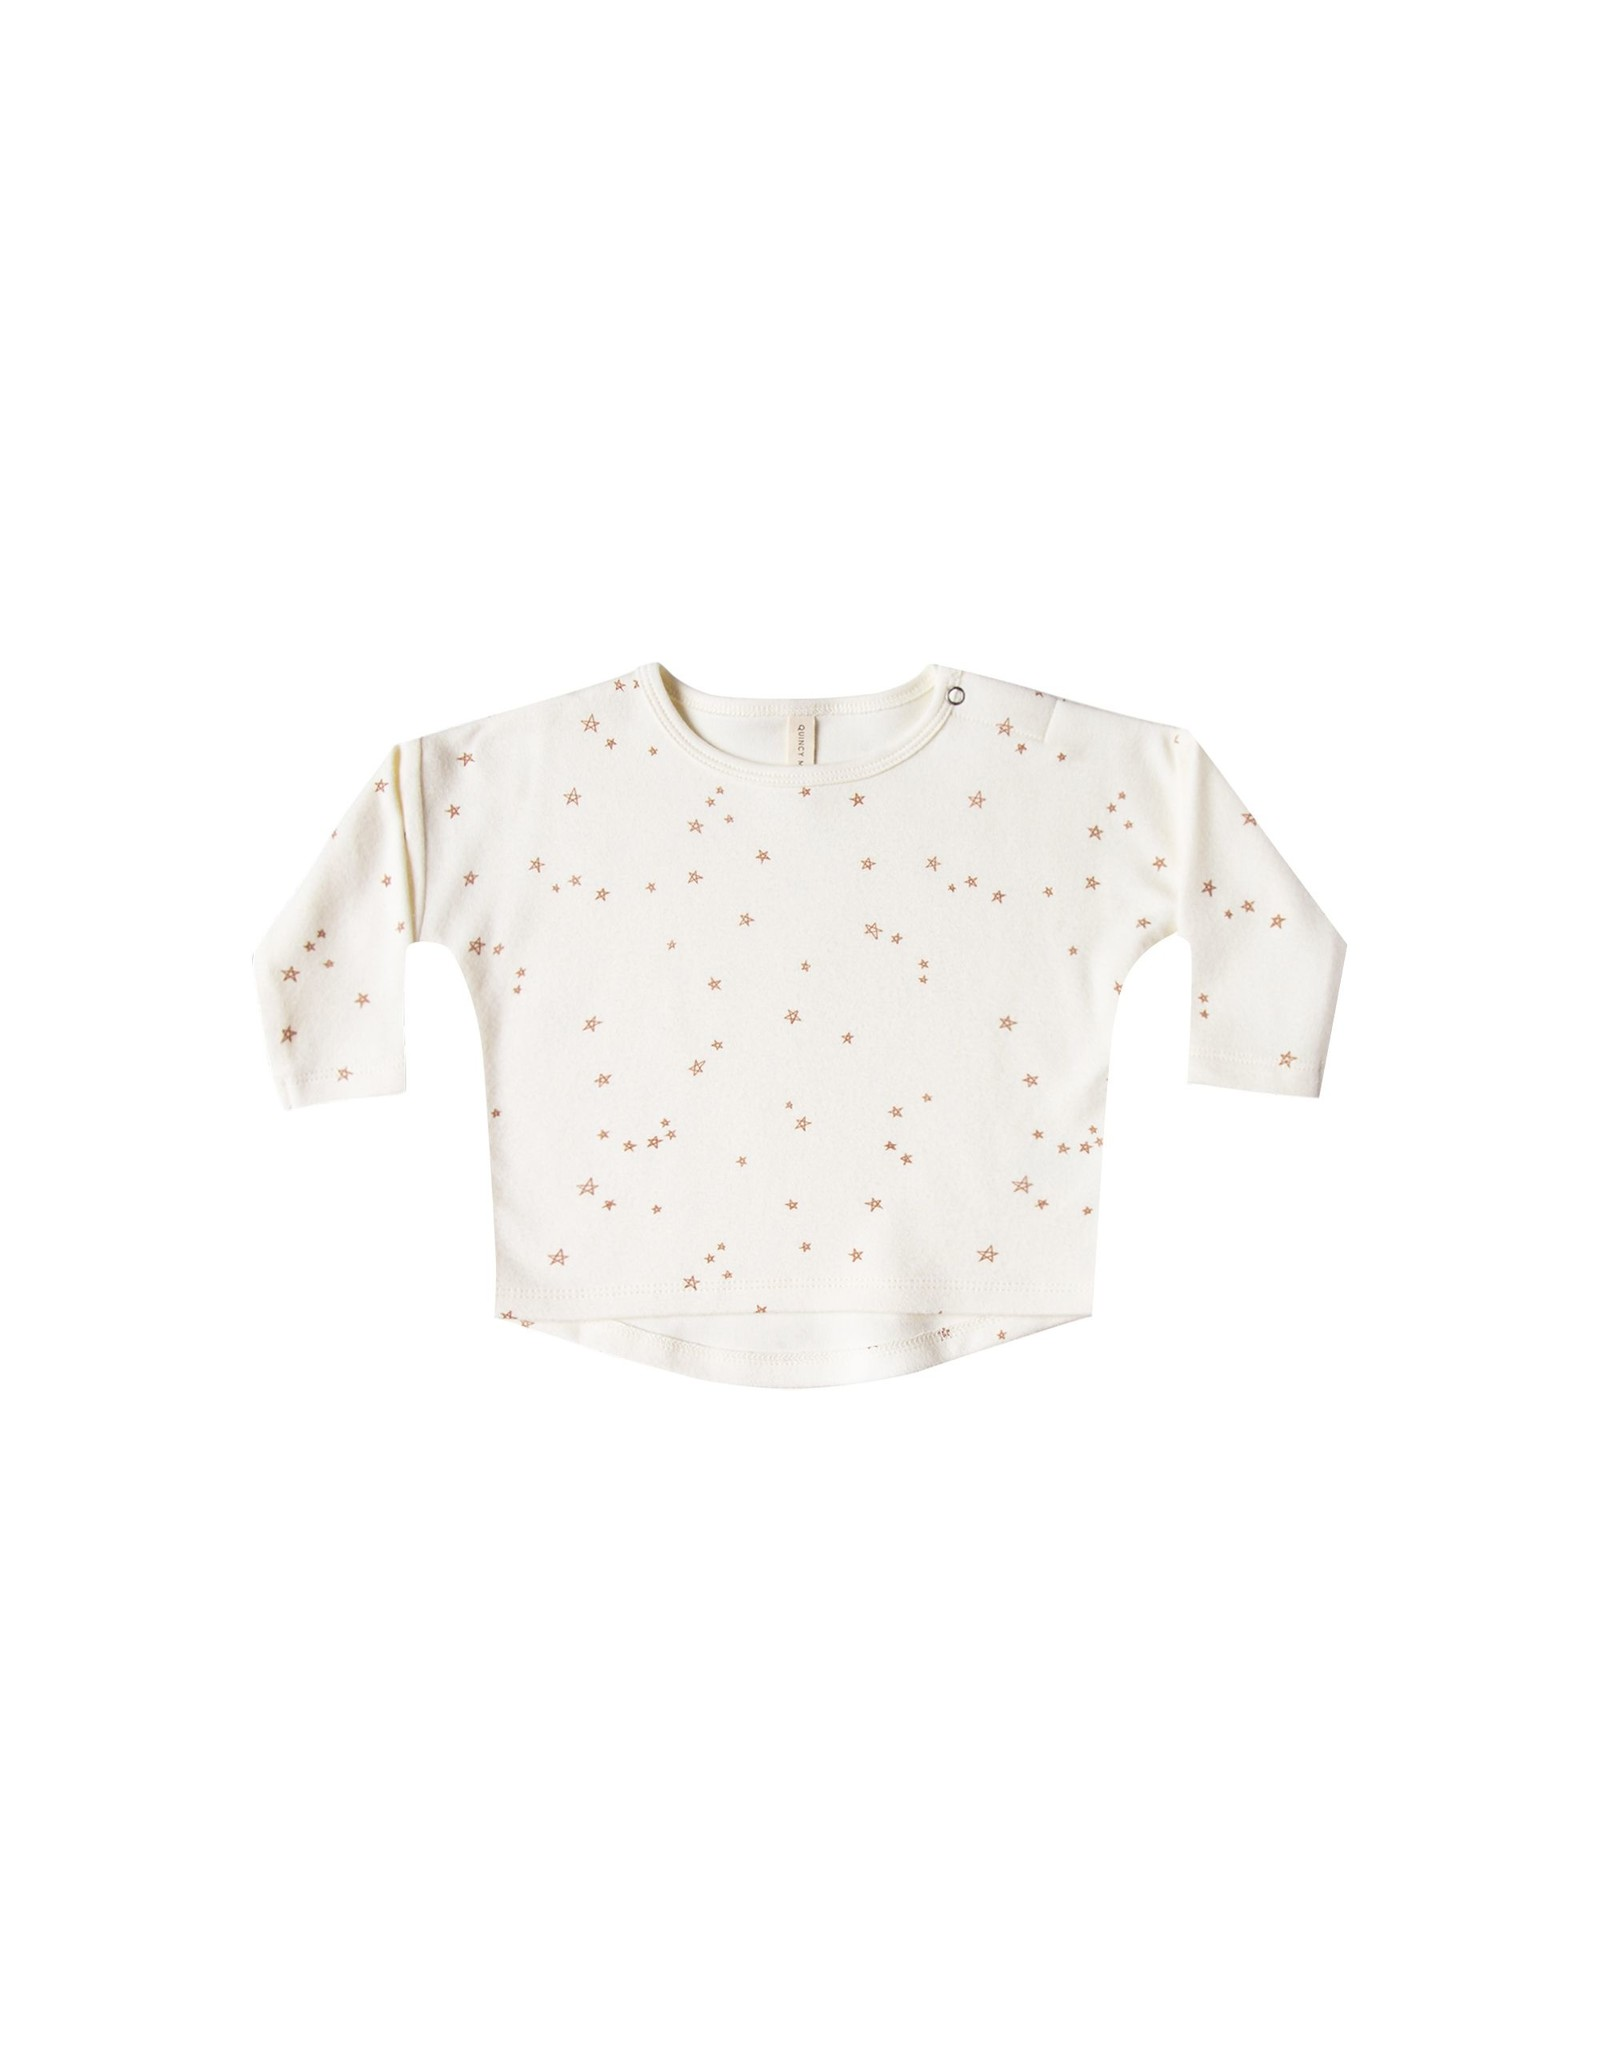 Quincy Mae l/s baby tee- ivory stars